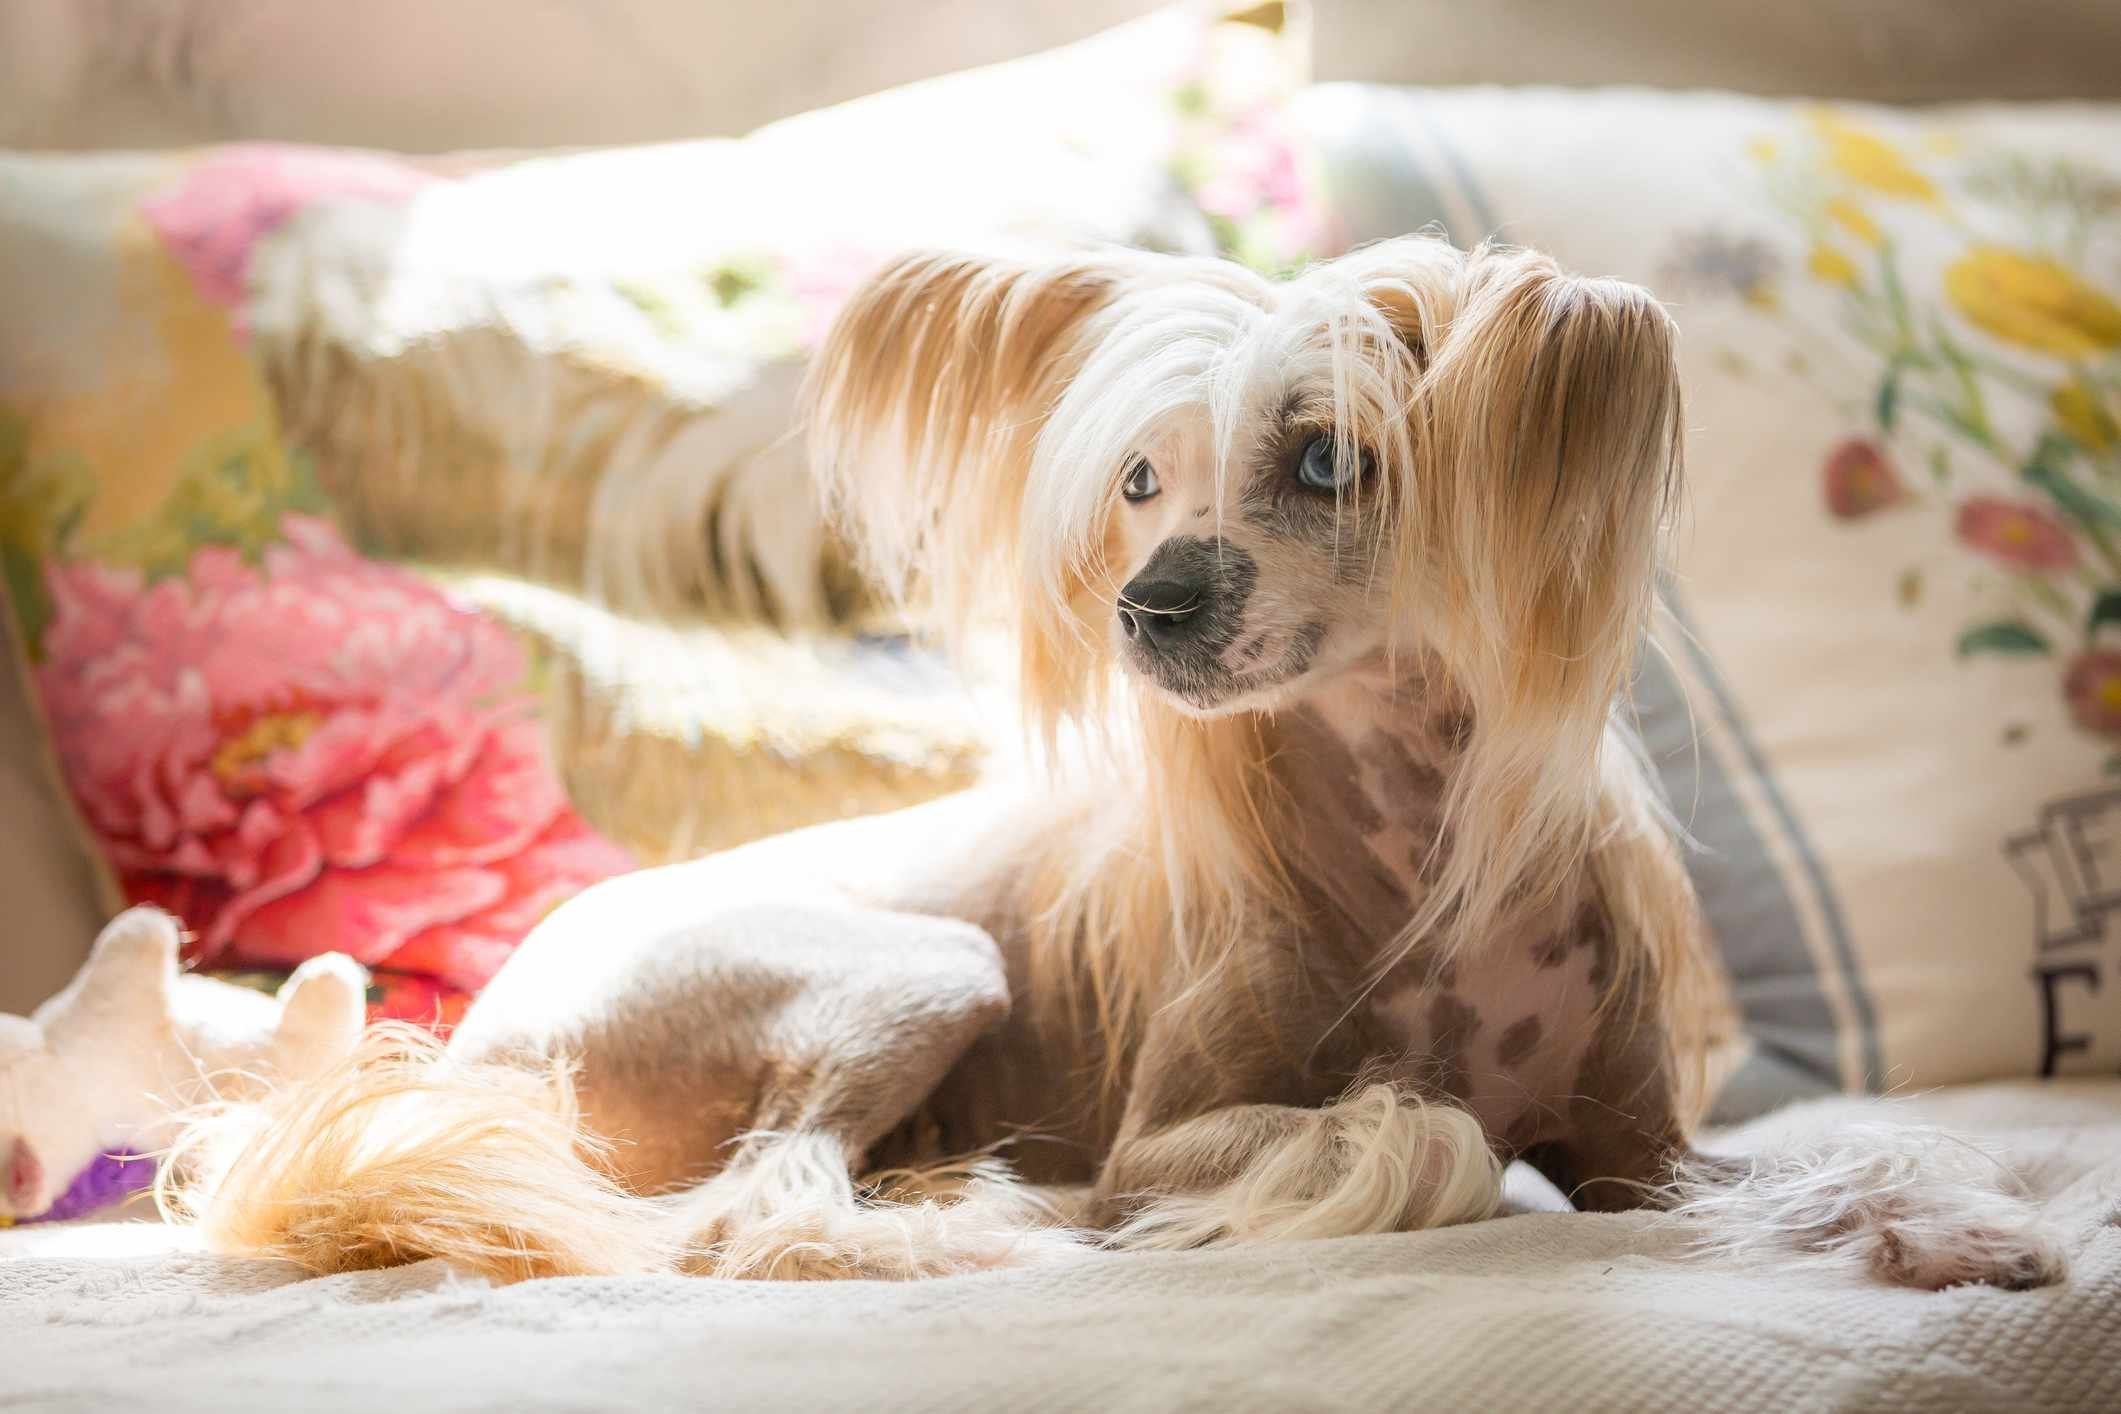 Chinese Crested dog laying in front of floral pillows in the sun.